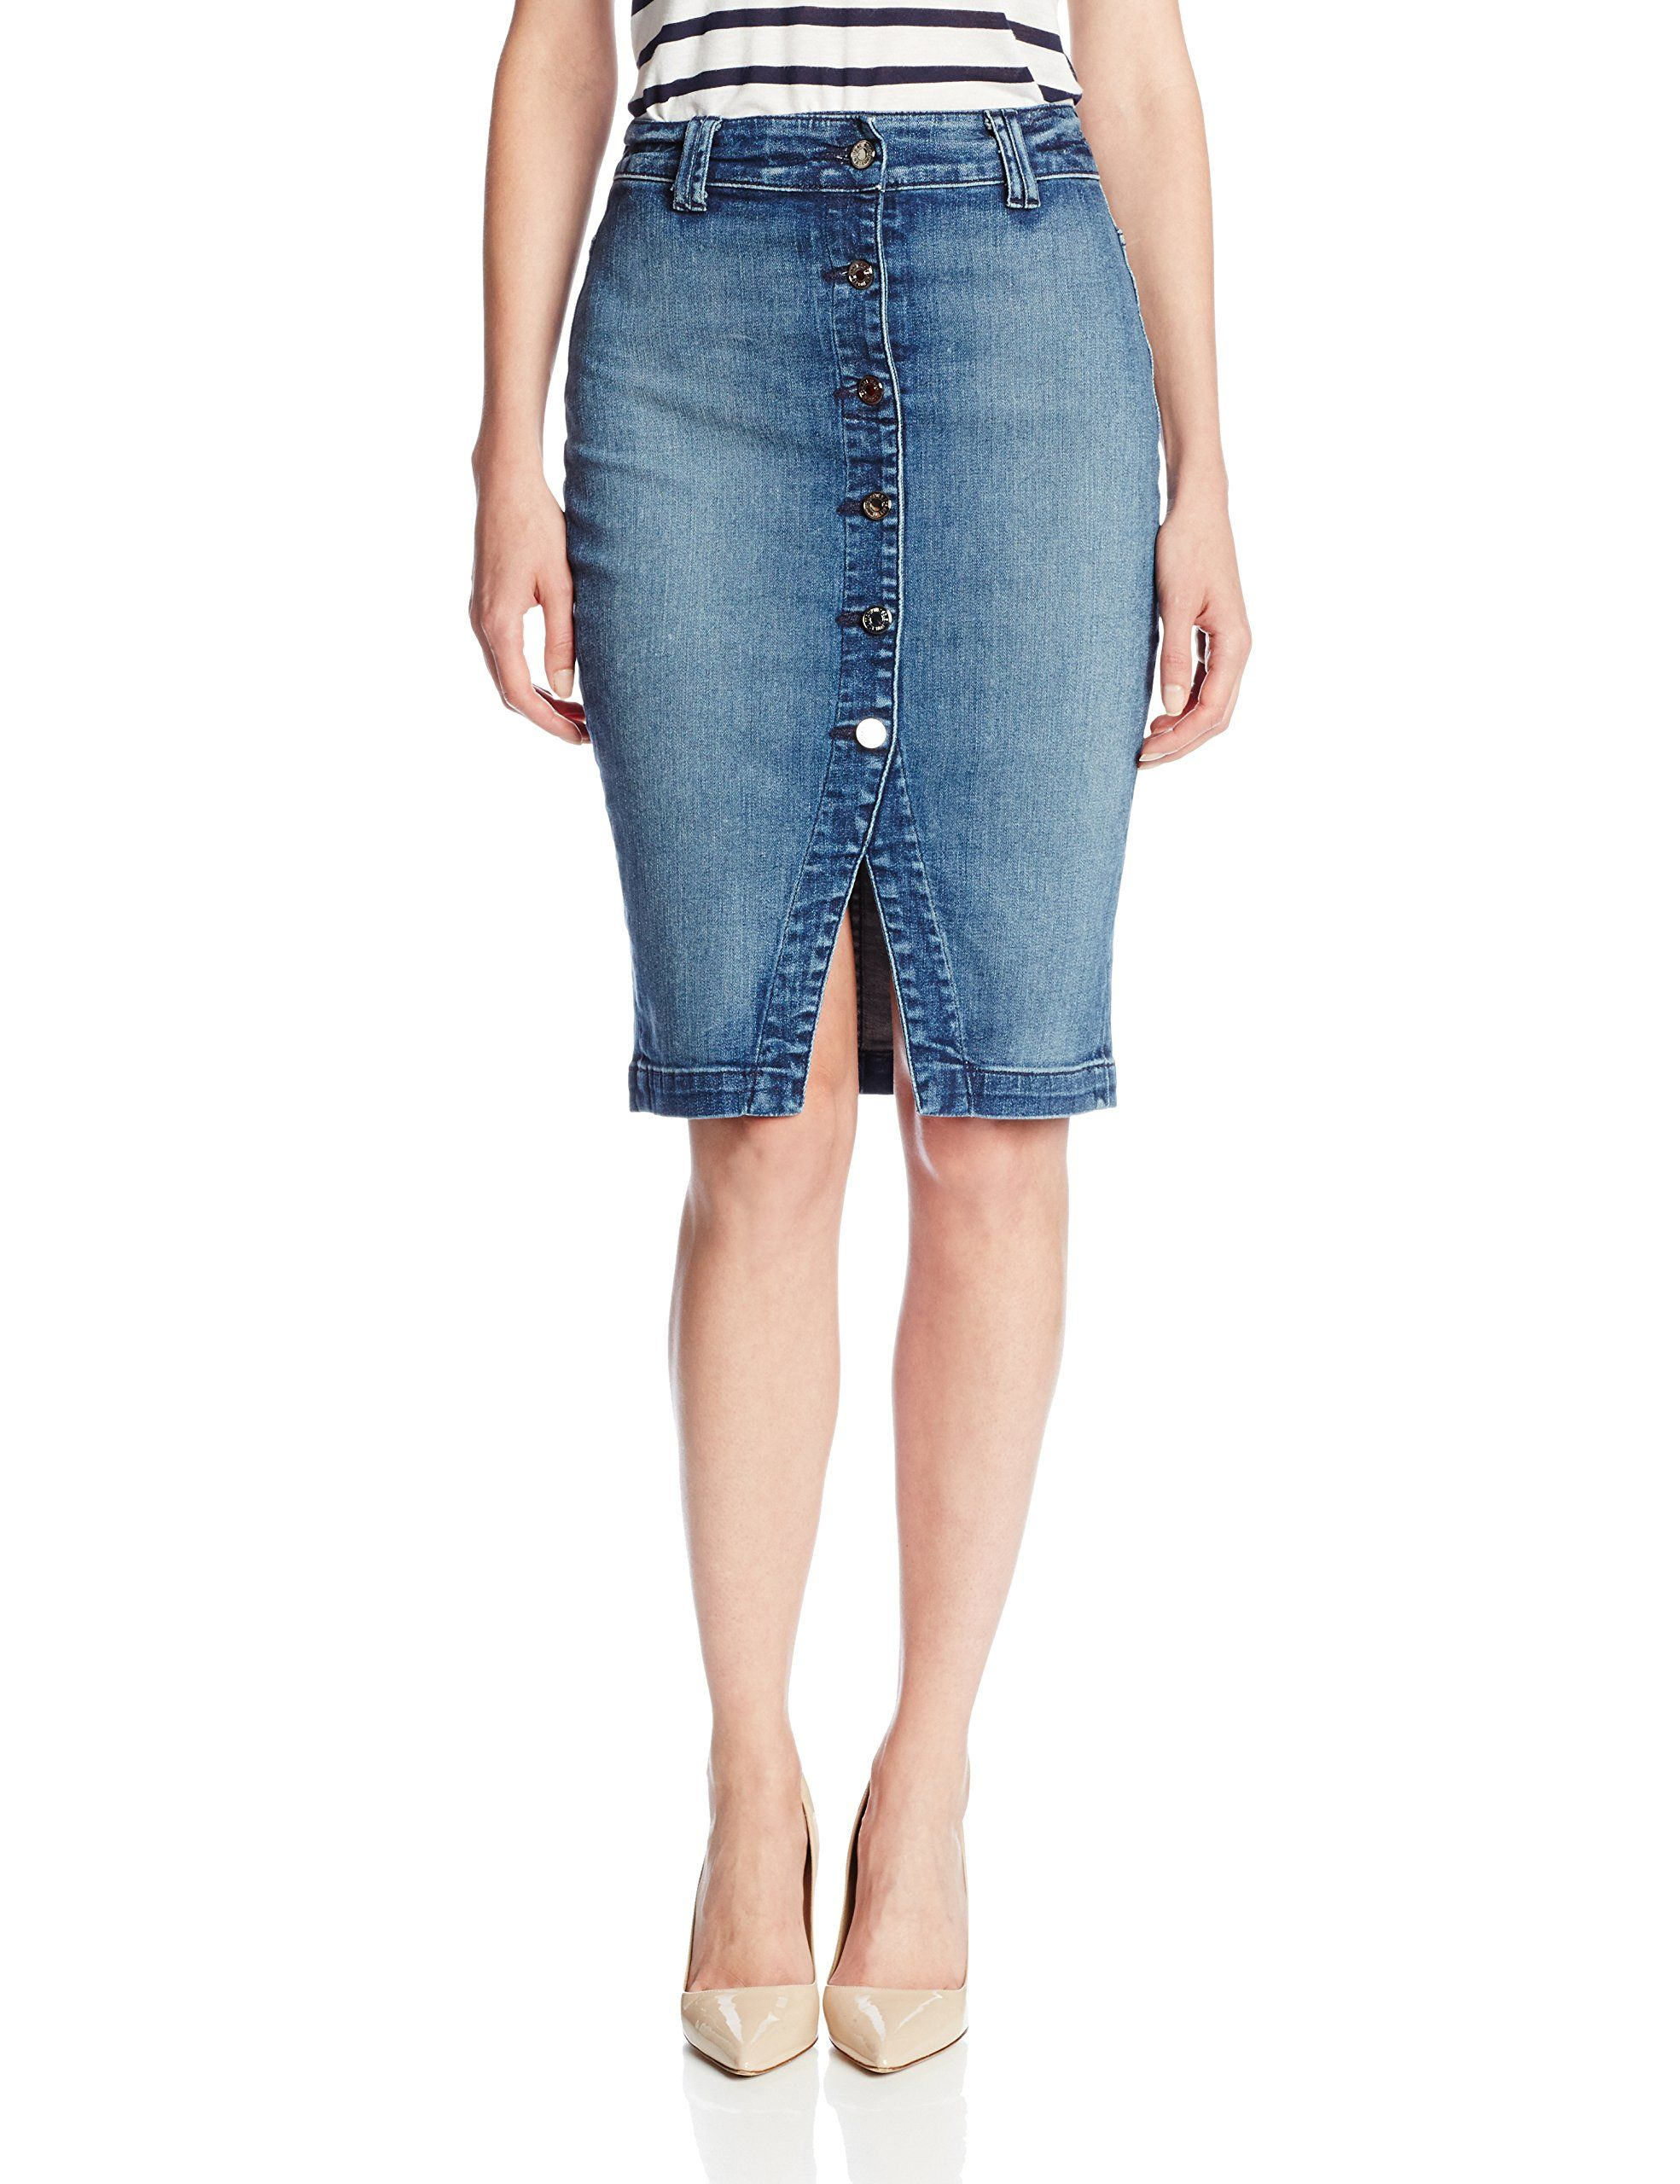 20d26c1c70 Try the front button skirt trend with 7 For All Mankind Women's denim  Pencil Skirt at Amazon Women's Clothing store: